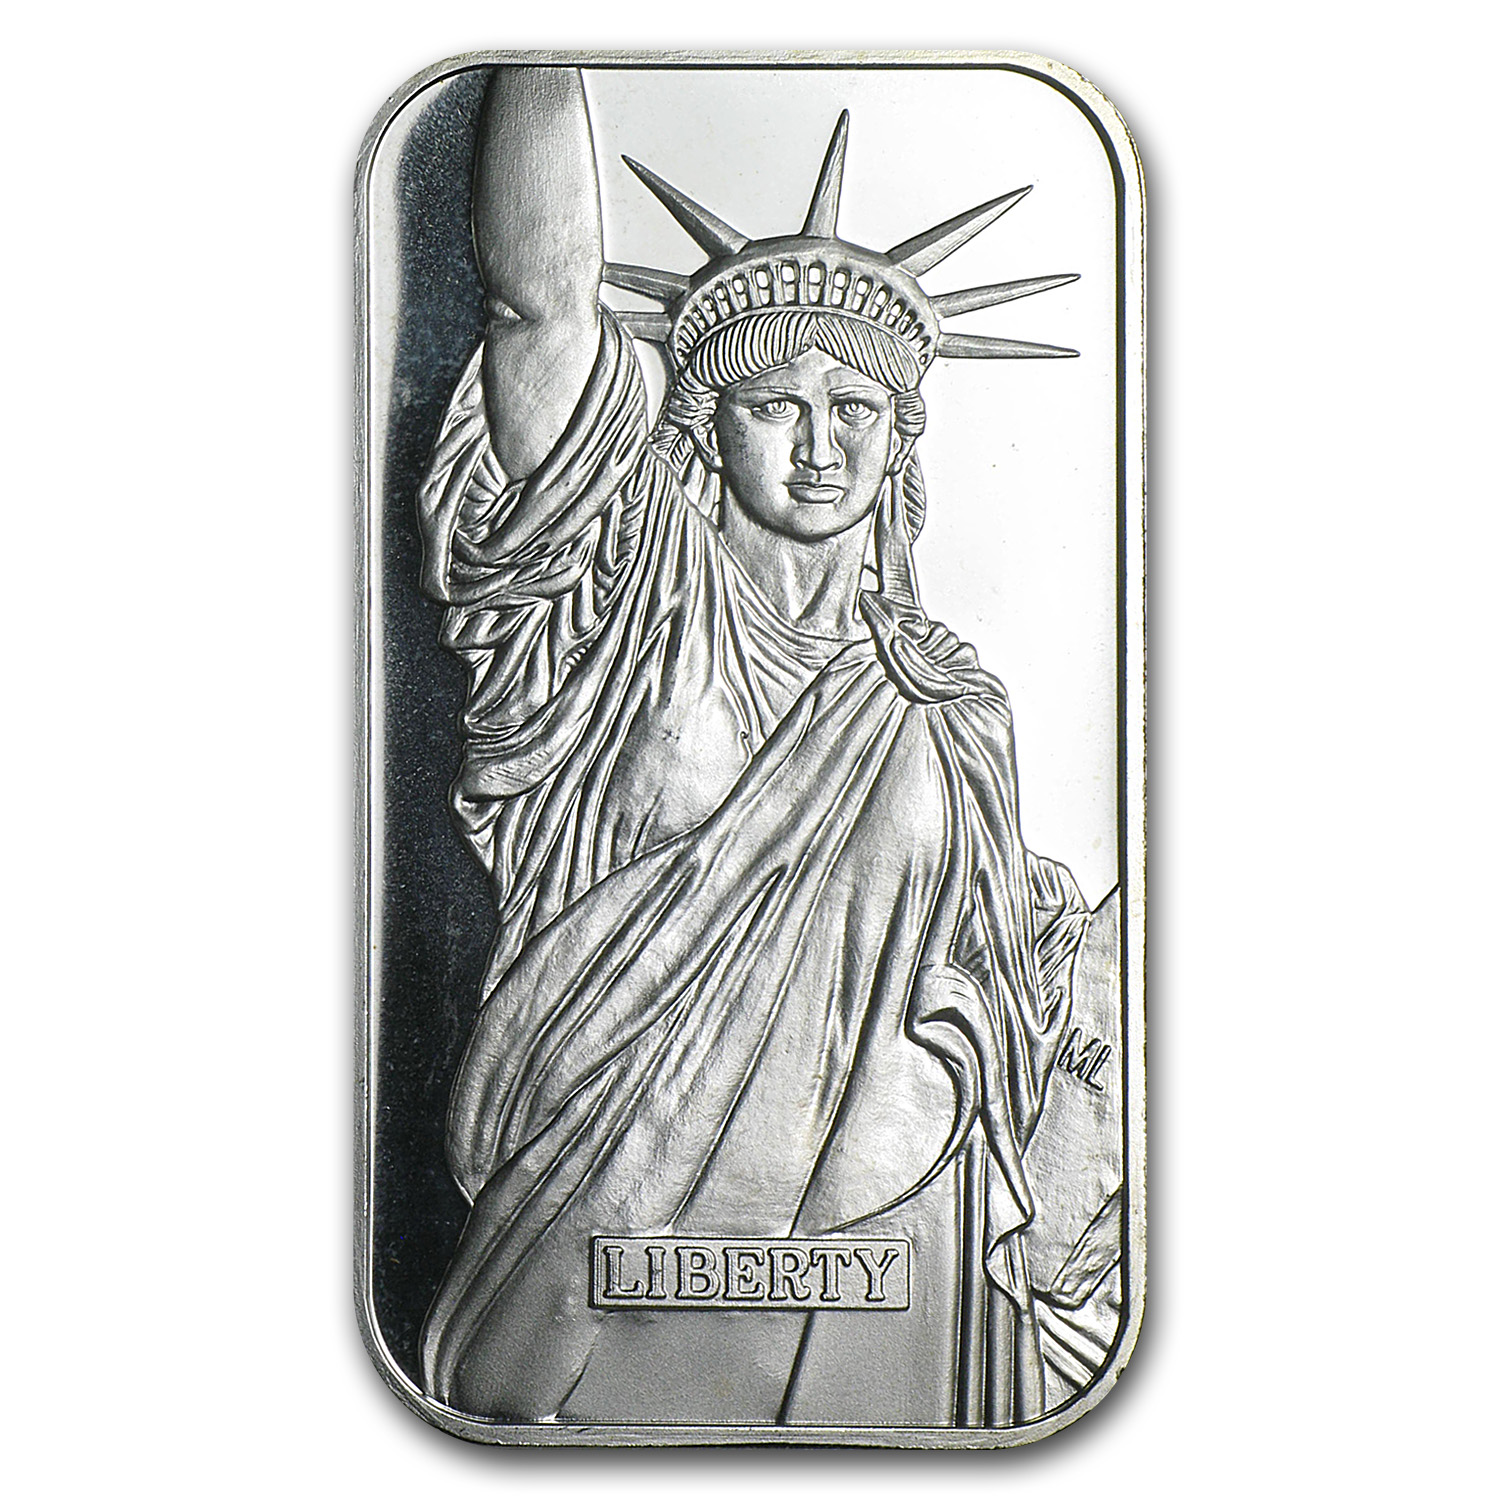 1 oz Silver Bar - Engelhard (Statue of Liberty, MTB)